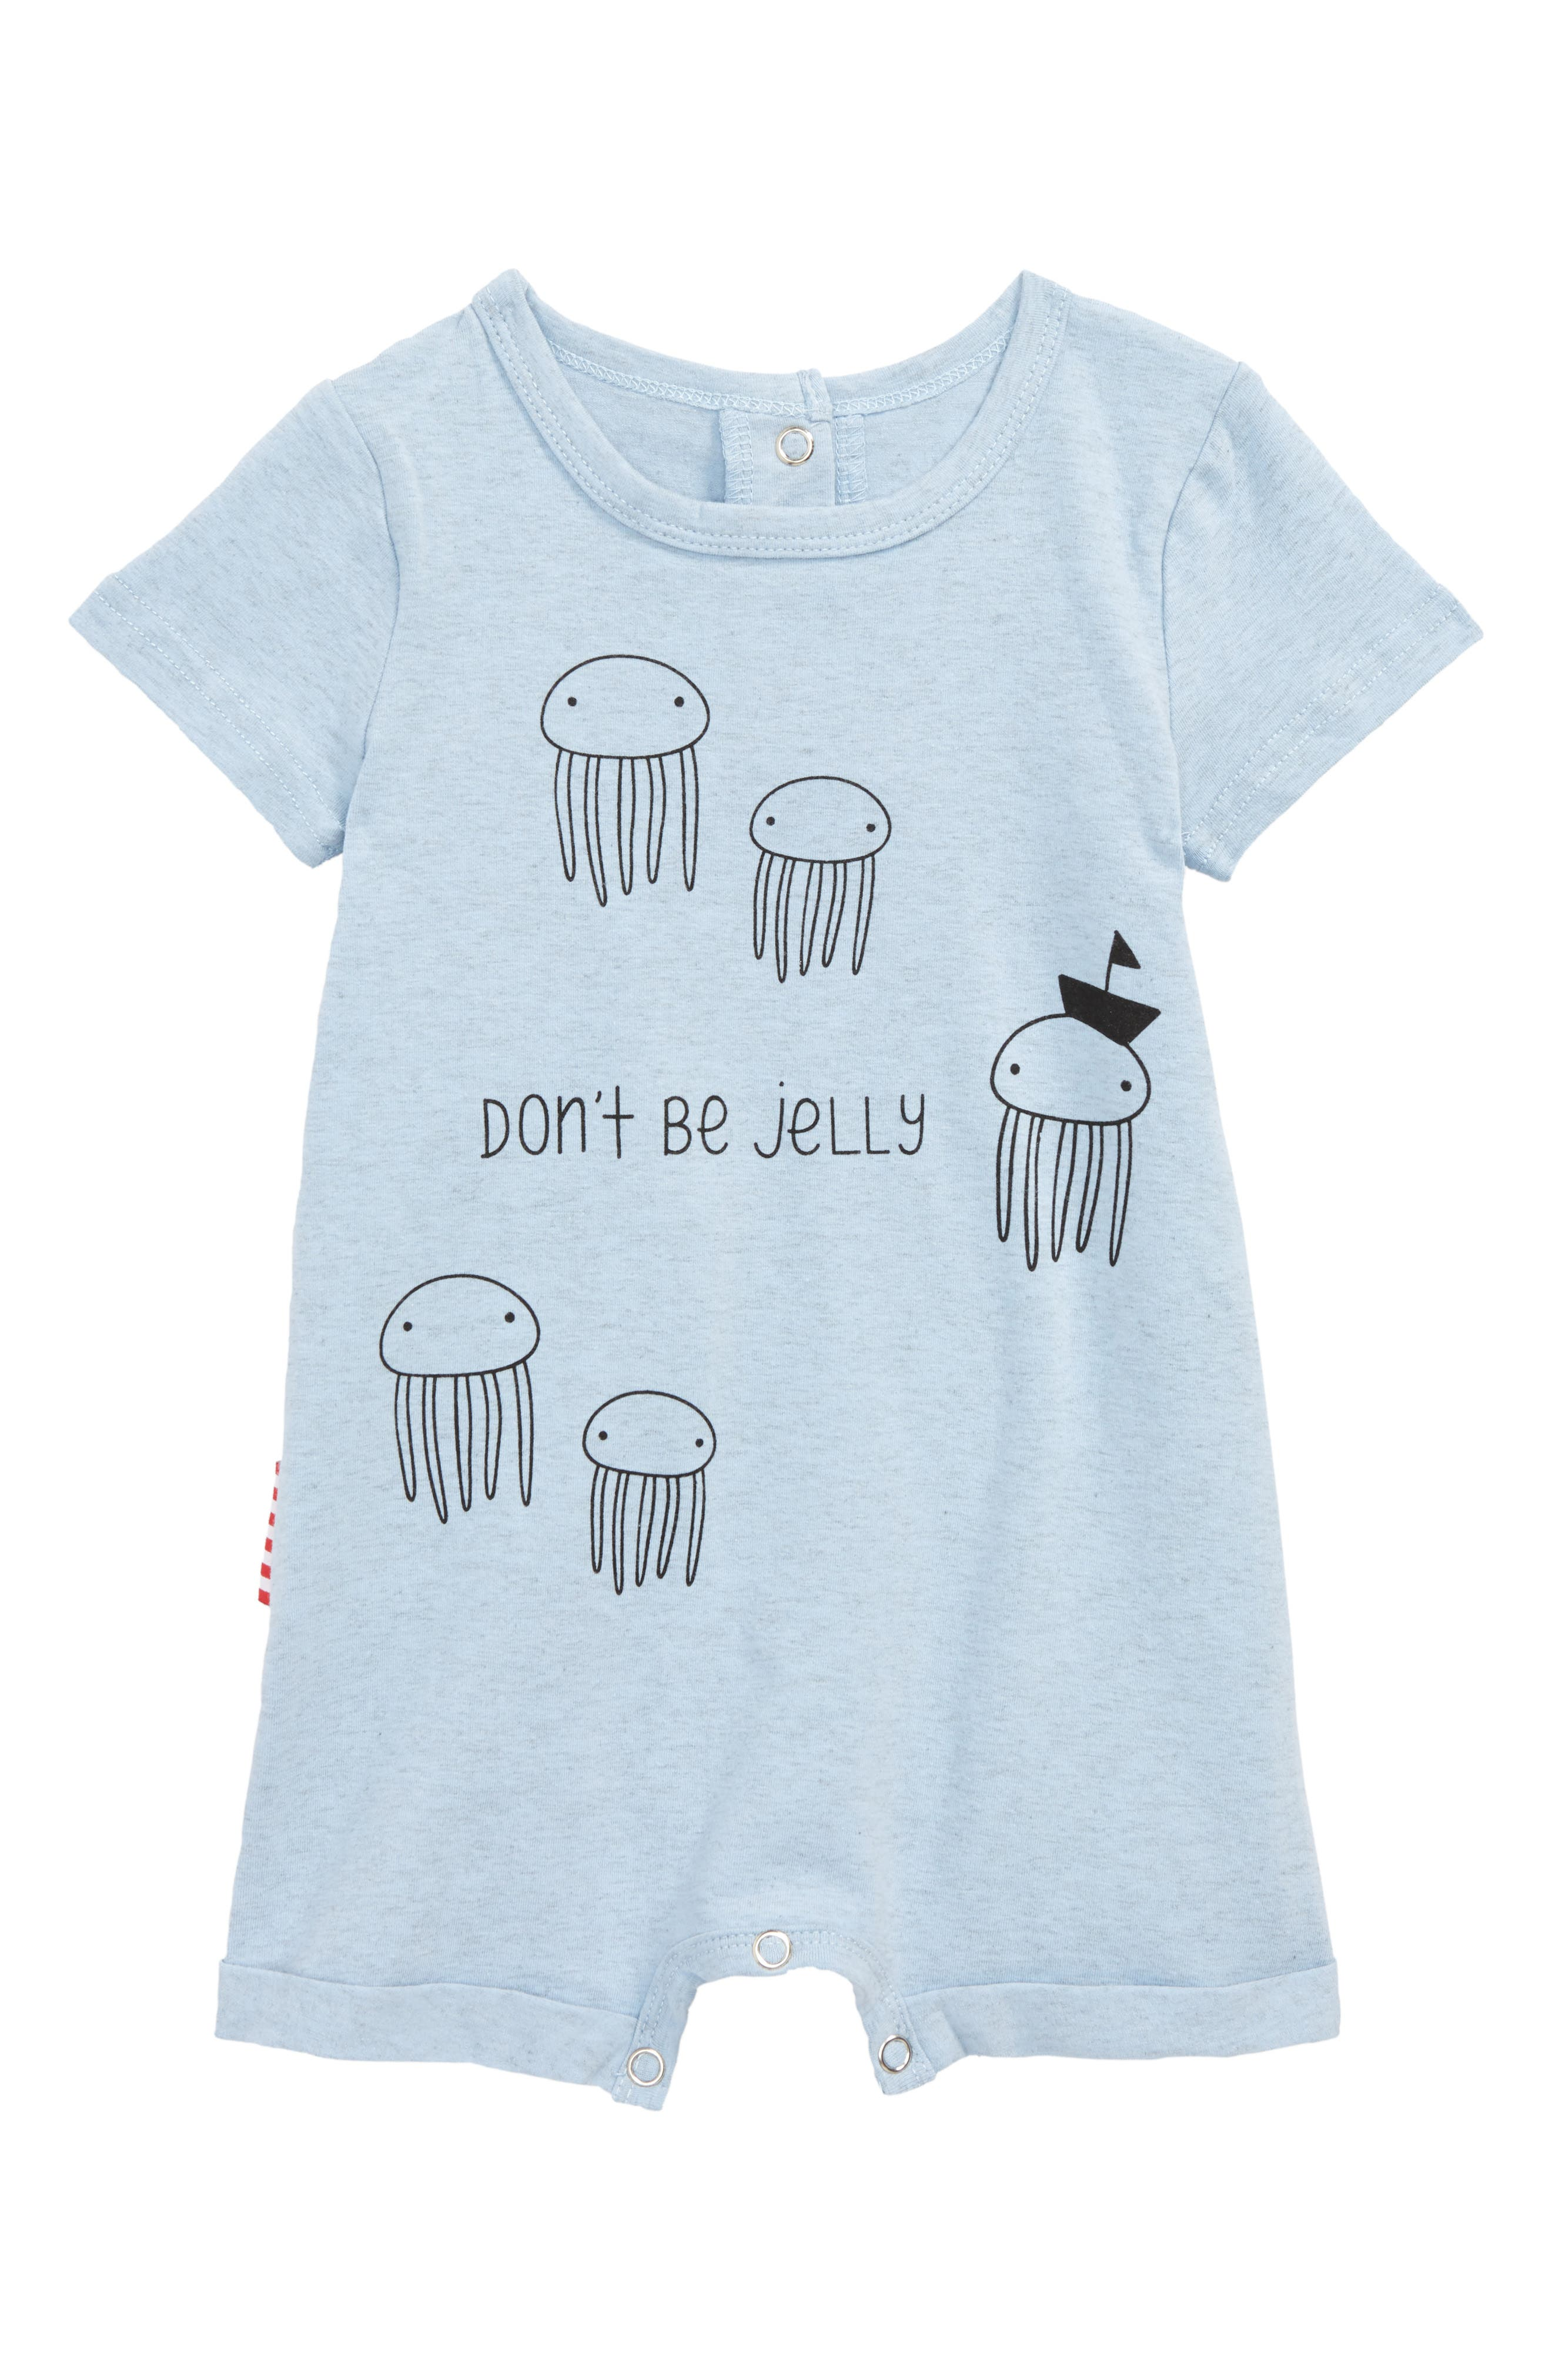 SOOKIbaby Don't Be Jelly Romper (Baby)